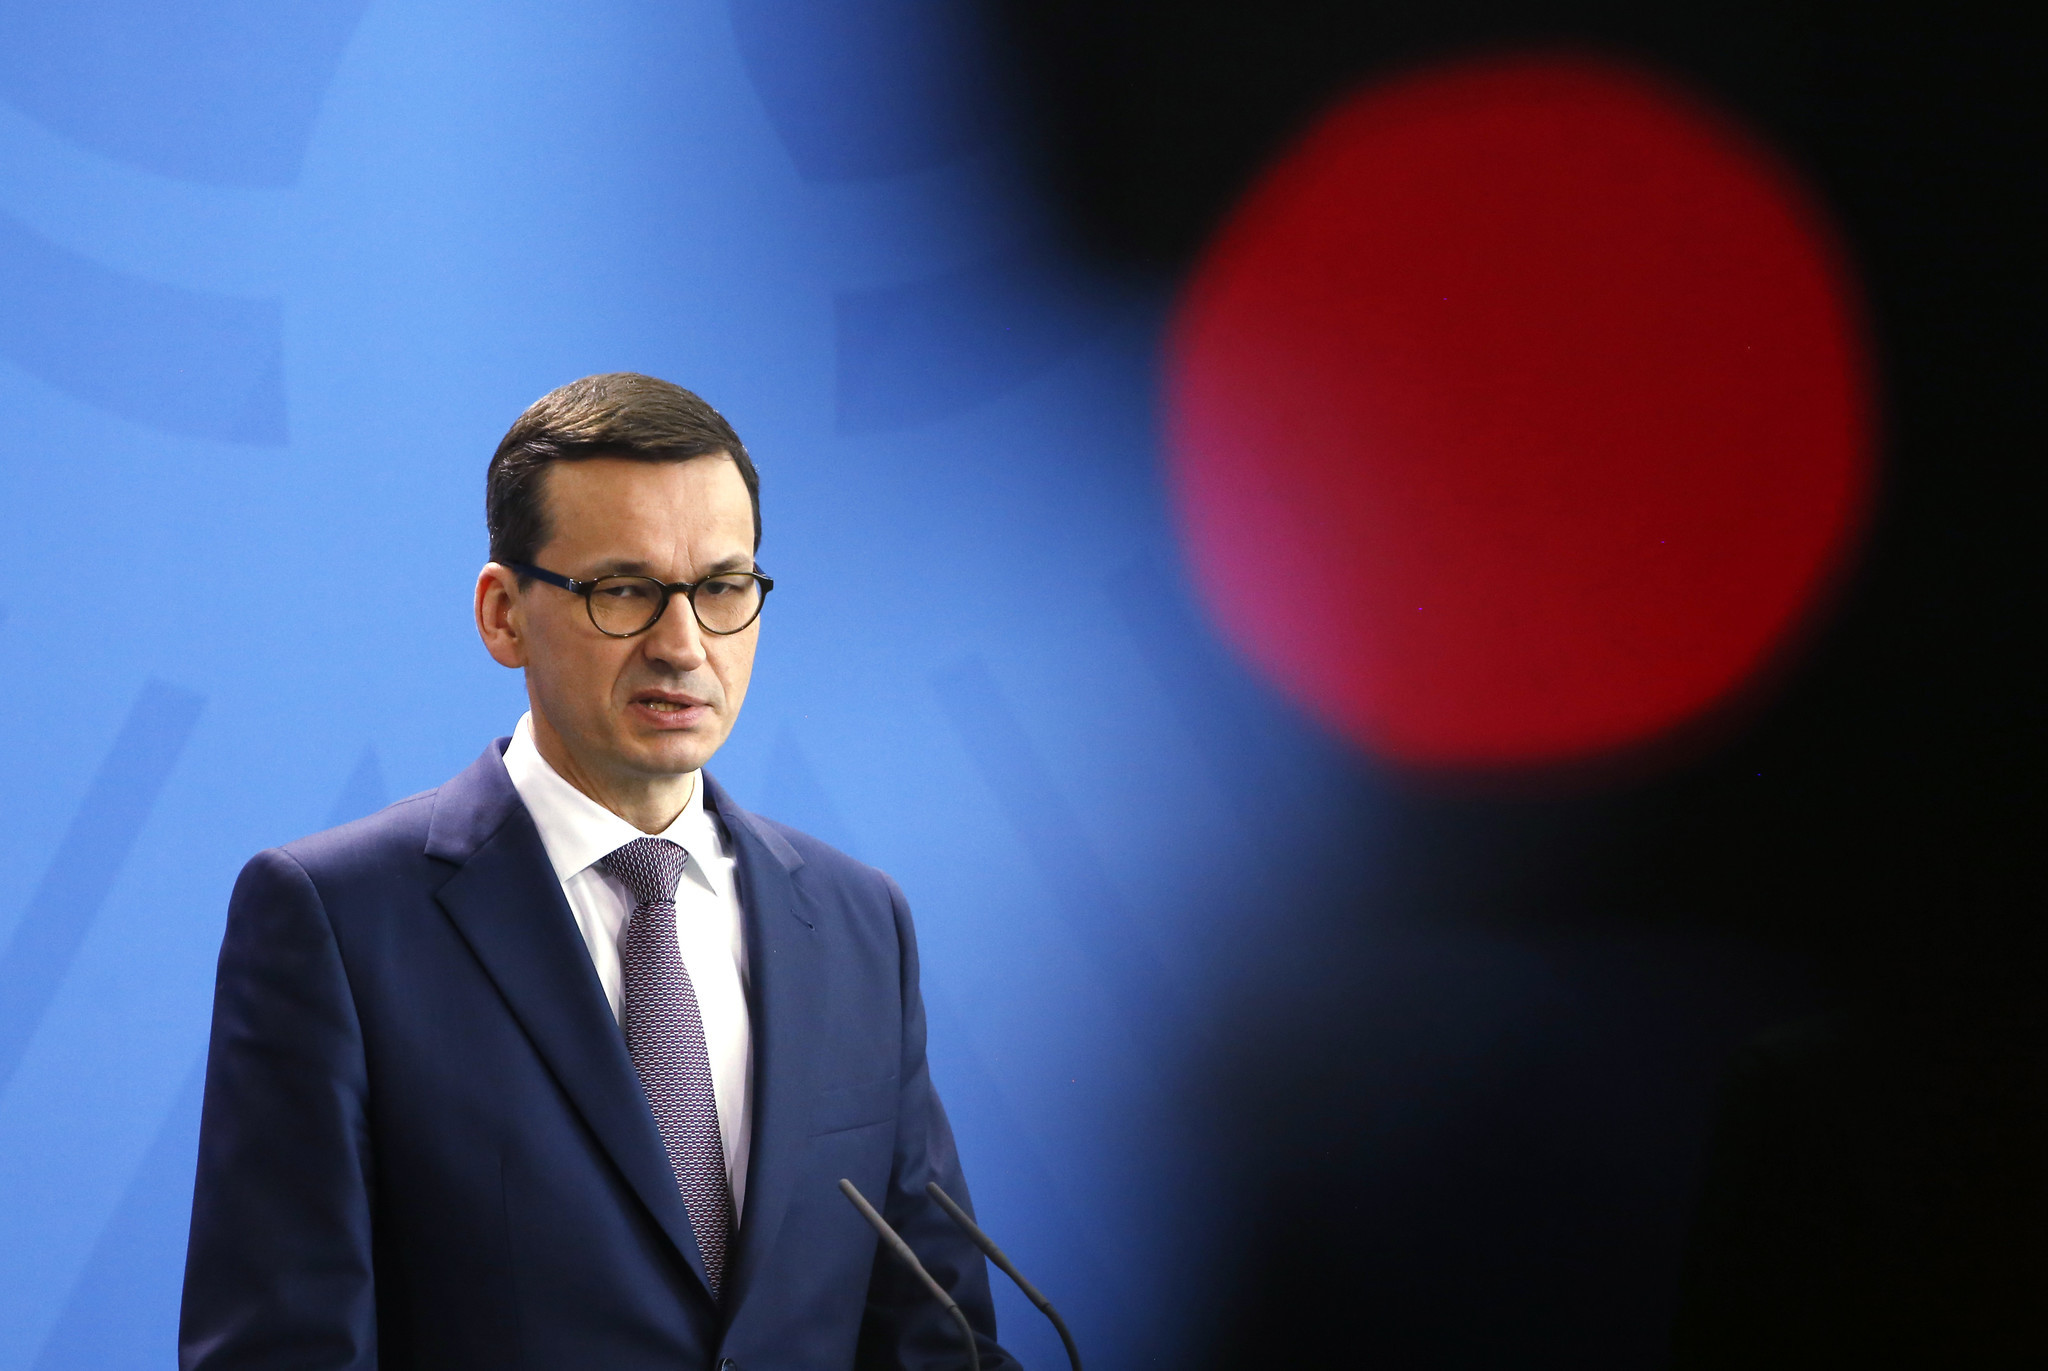 Uproar in Israel over Polish prime minister's remark on 'Jewish perpetrators' during WWII